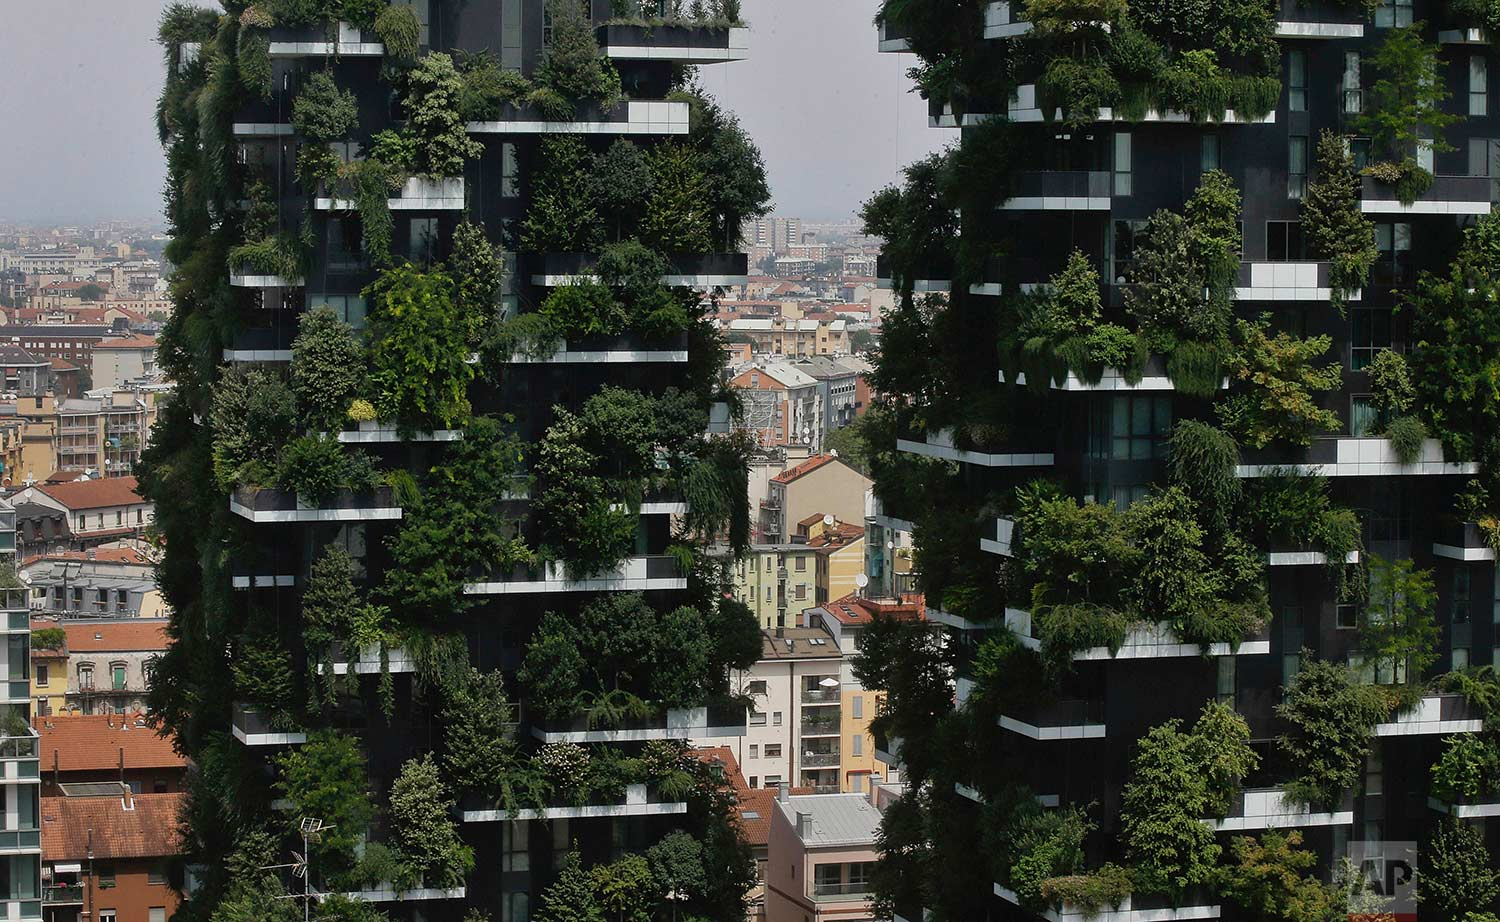 The twin towers of the Bosco Verticale (Vertical Forest) residential buildings at the Porta Nuova district, rise above Milan, Italy, on Thursday, Aug. 3, 2017. (AP Photo/Luca Bruno)